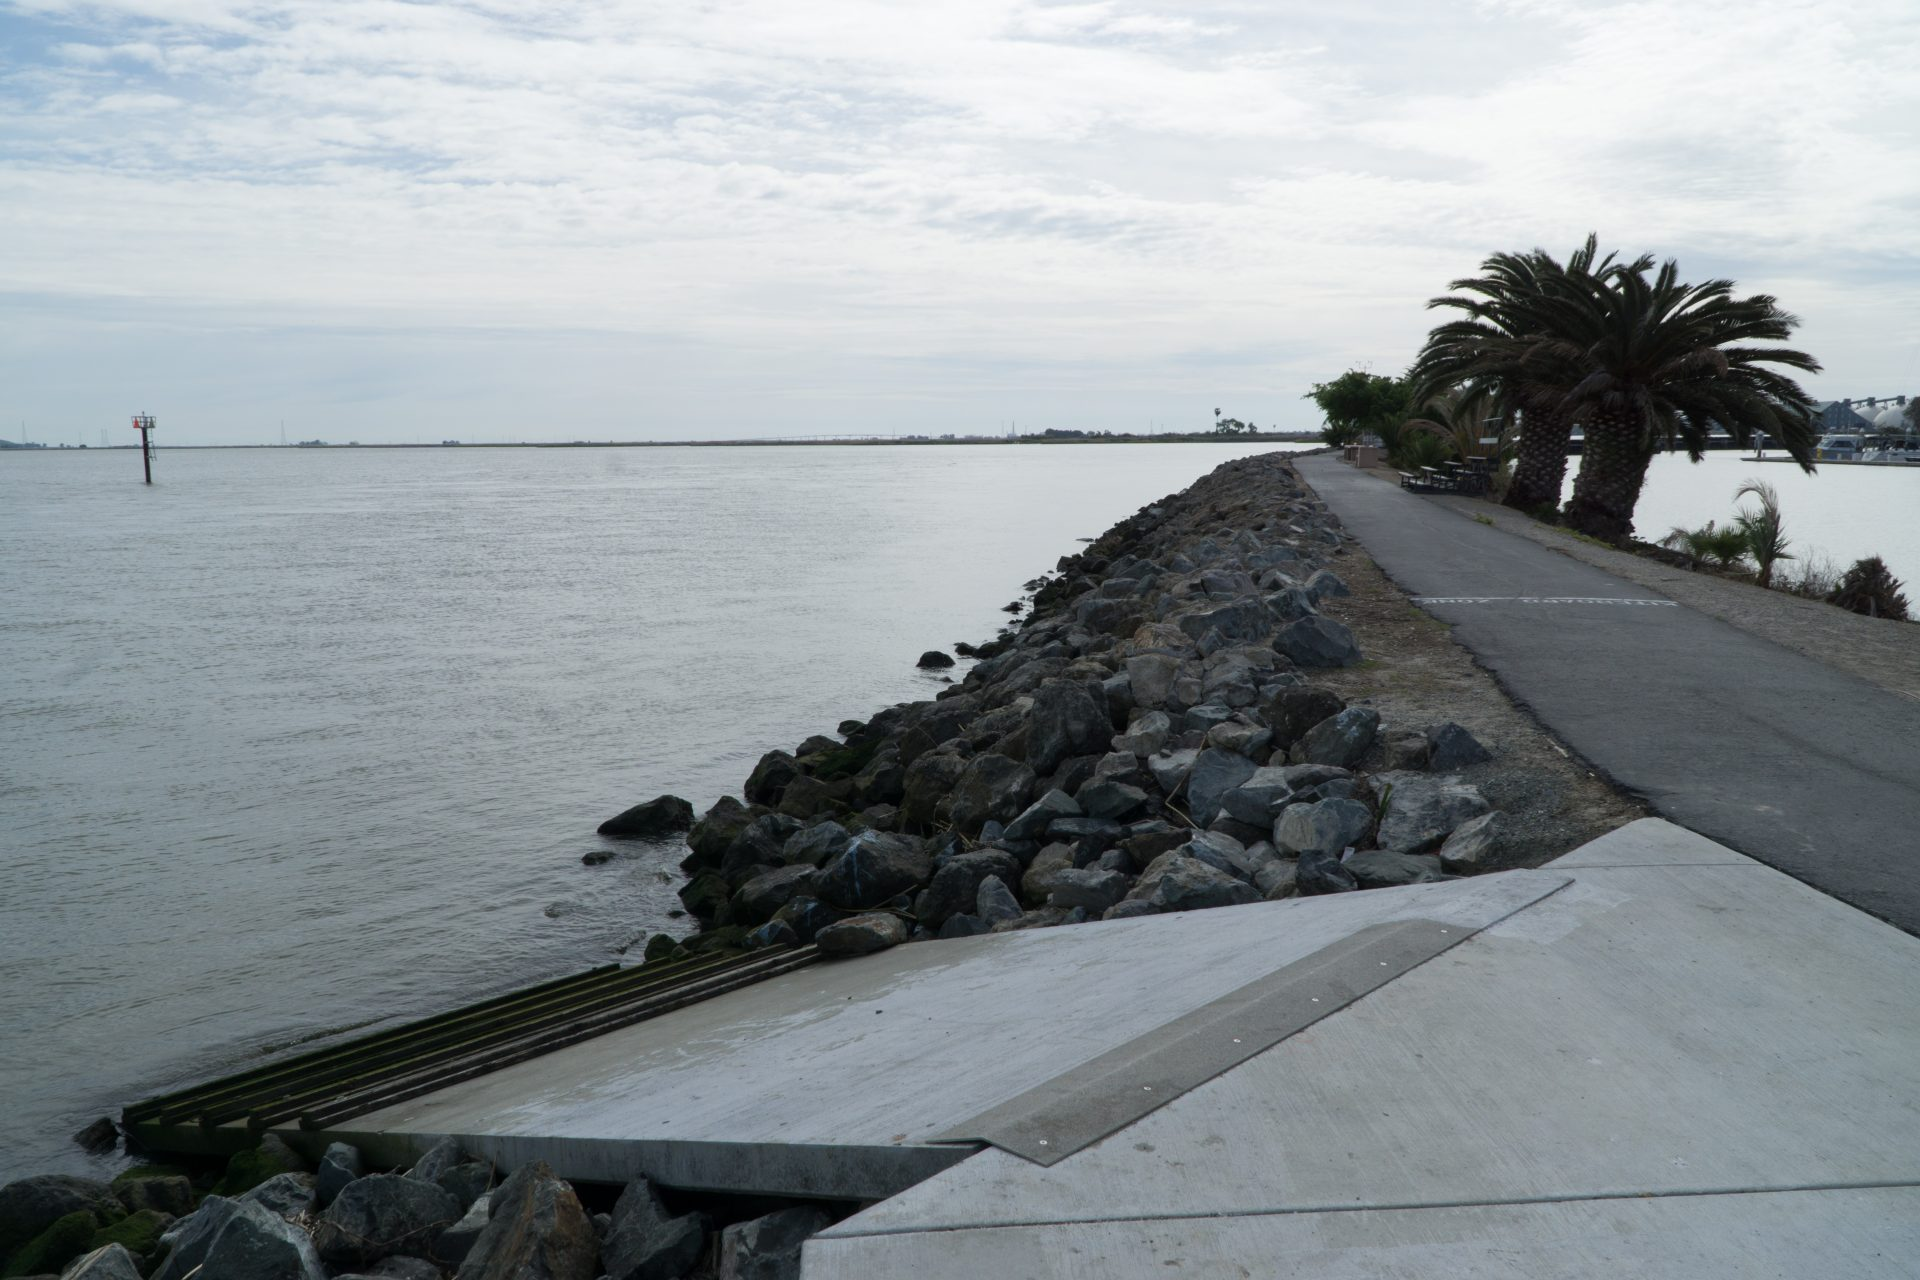 ramp into water splits to left from paved path